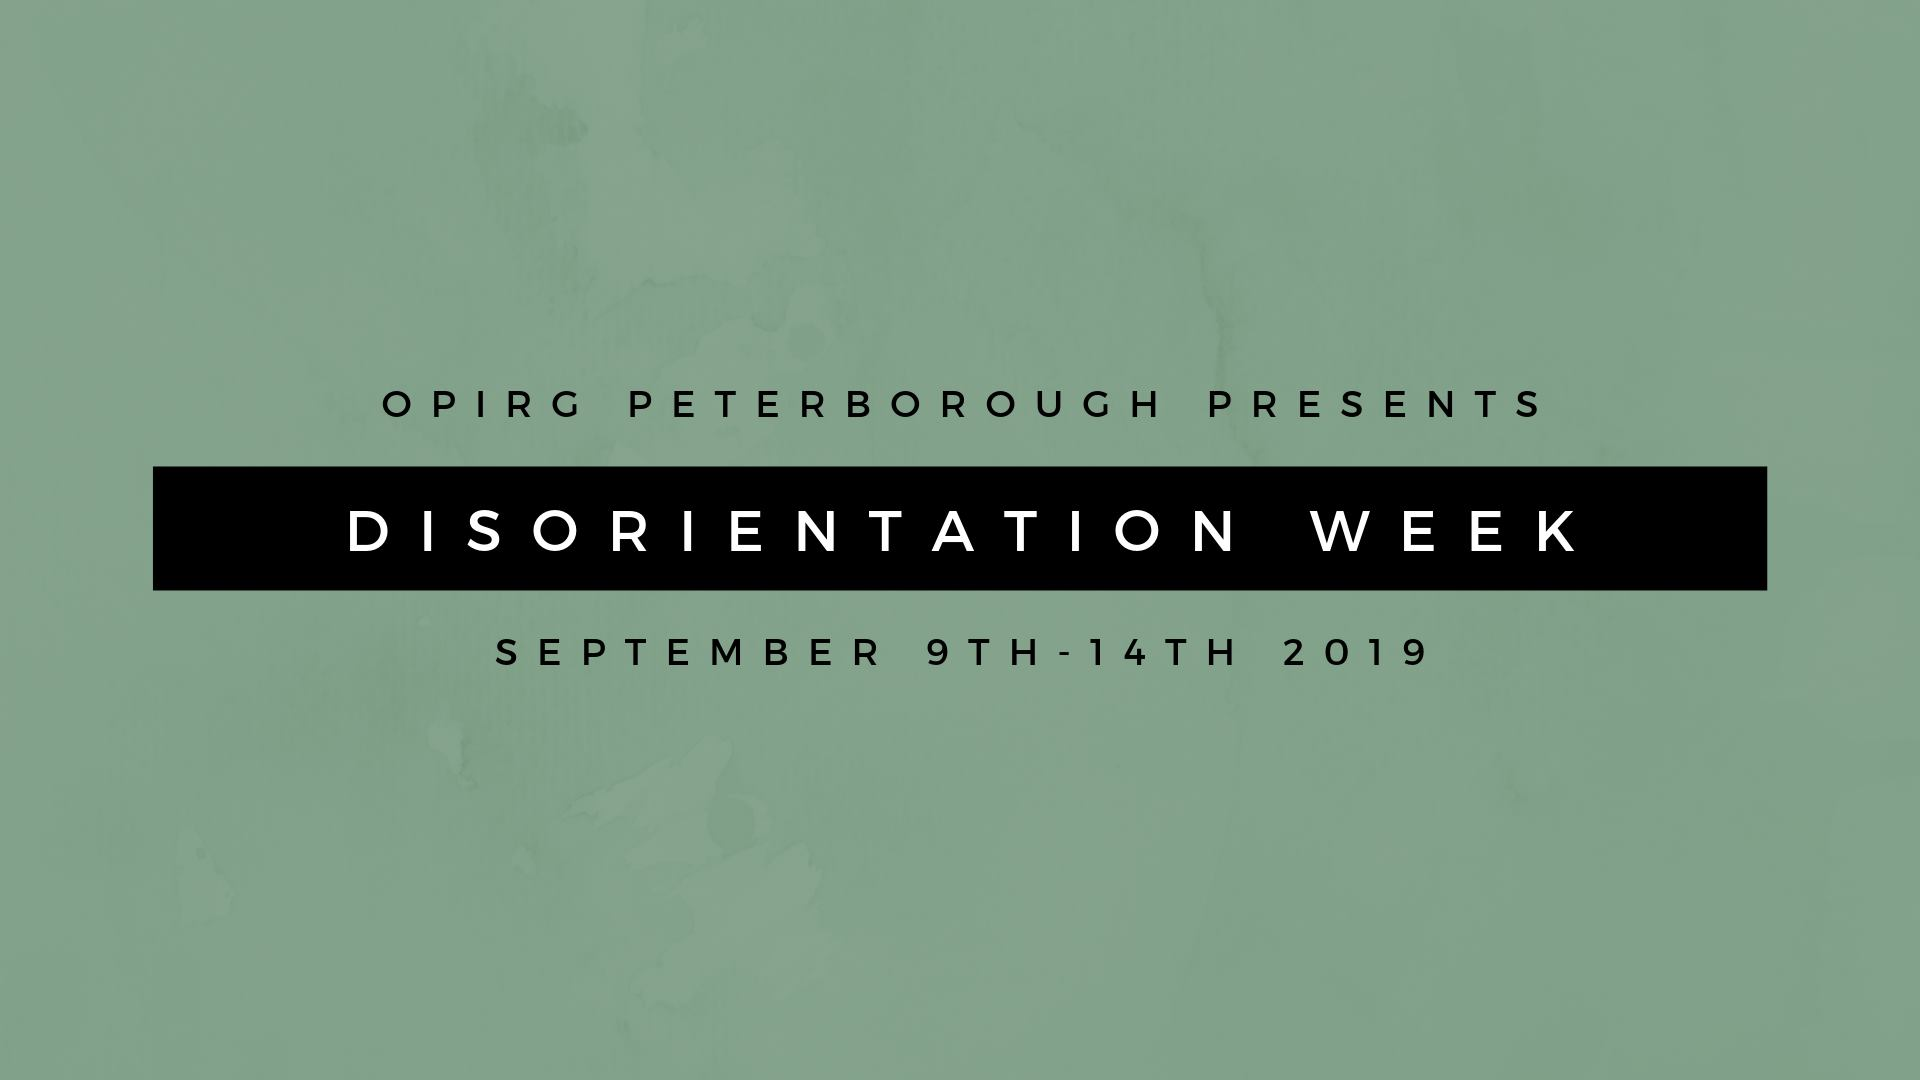 OPIRG Peterborough Presents: DisOrientation Week 2019